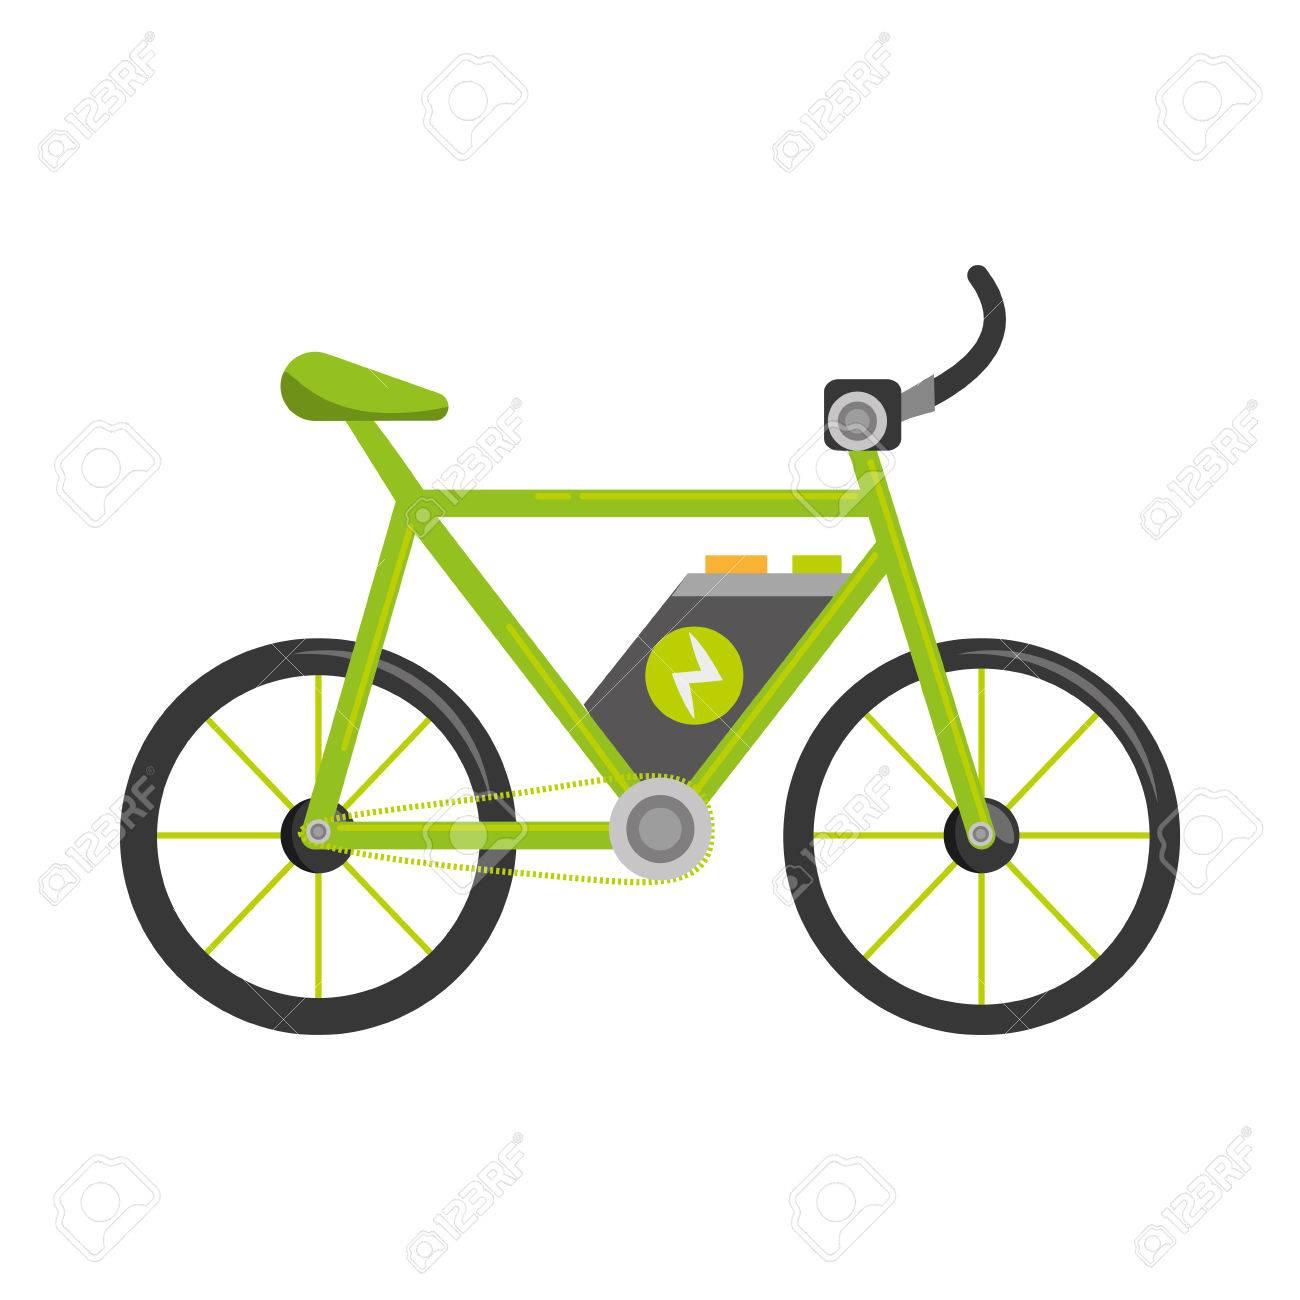 bicycle ecology vehicle isolated icon vector illustration design - 76374636